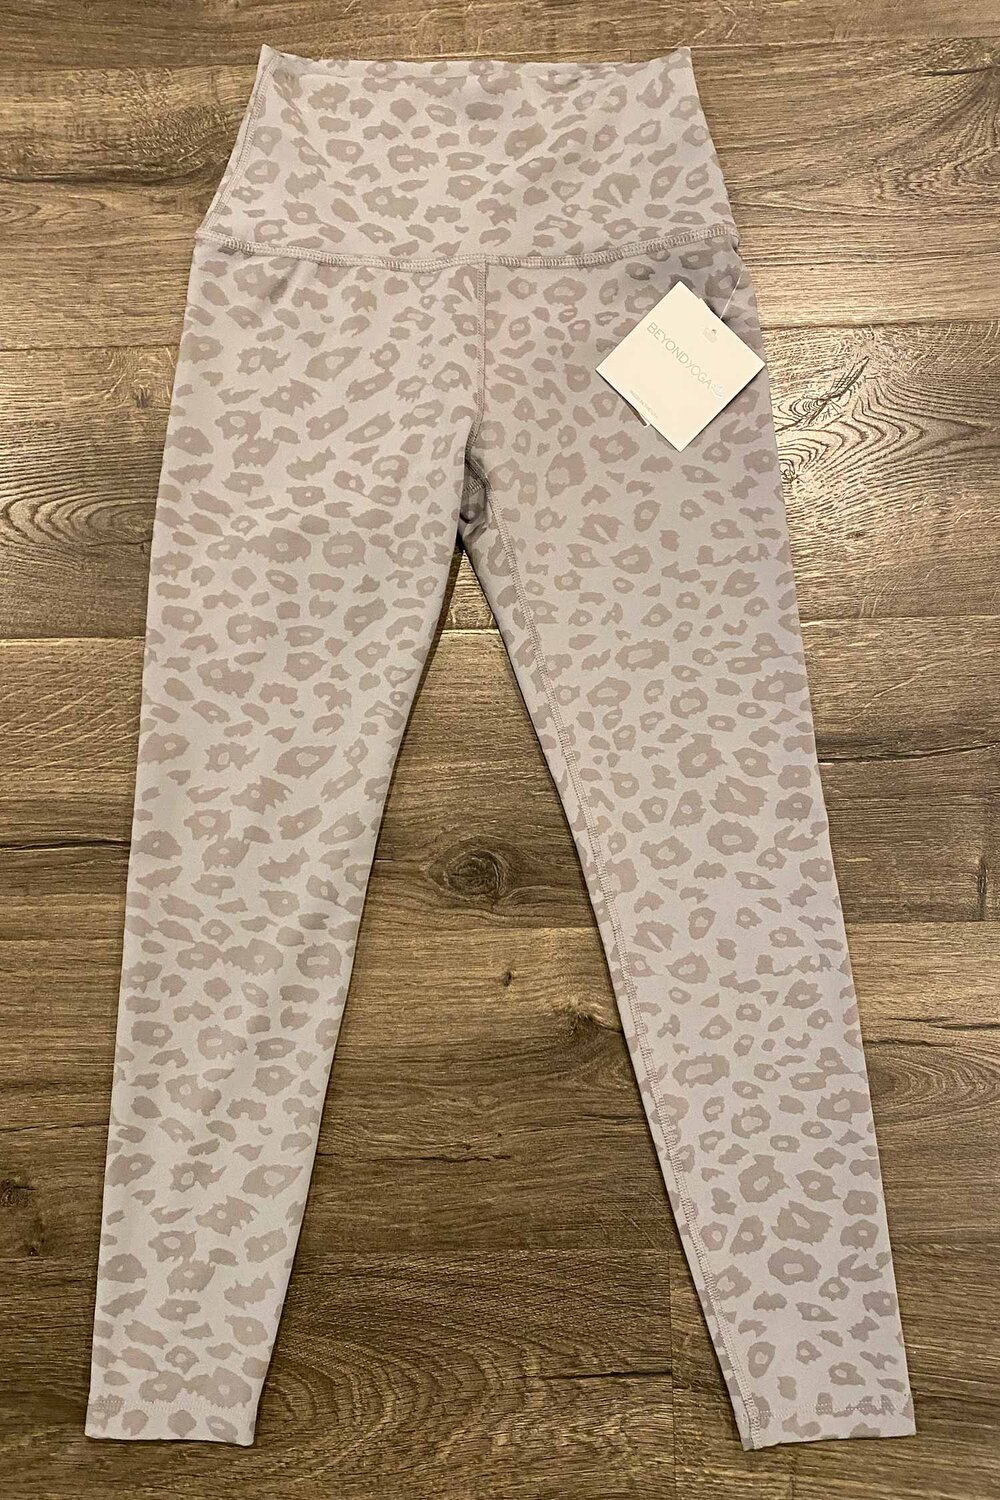 Sale Beyond Yoga Leopard Jacquard High Waisted Legging Ride Oakland Cycling Studio Cycling Spin Class In Oakland